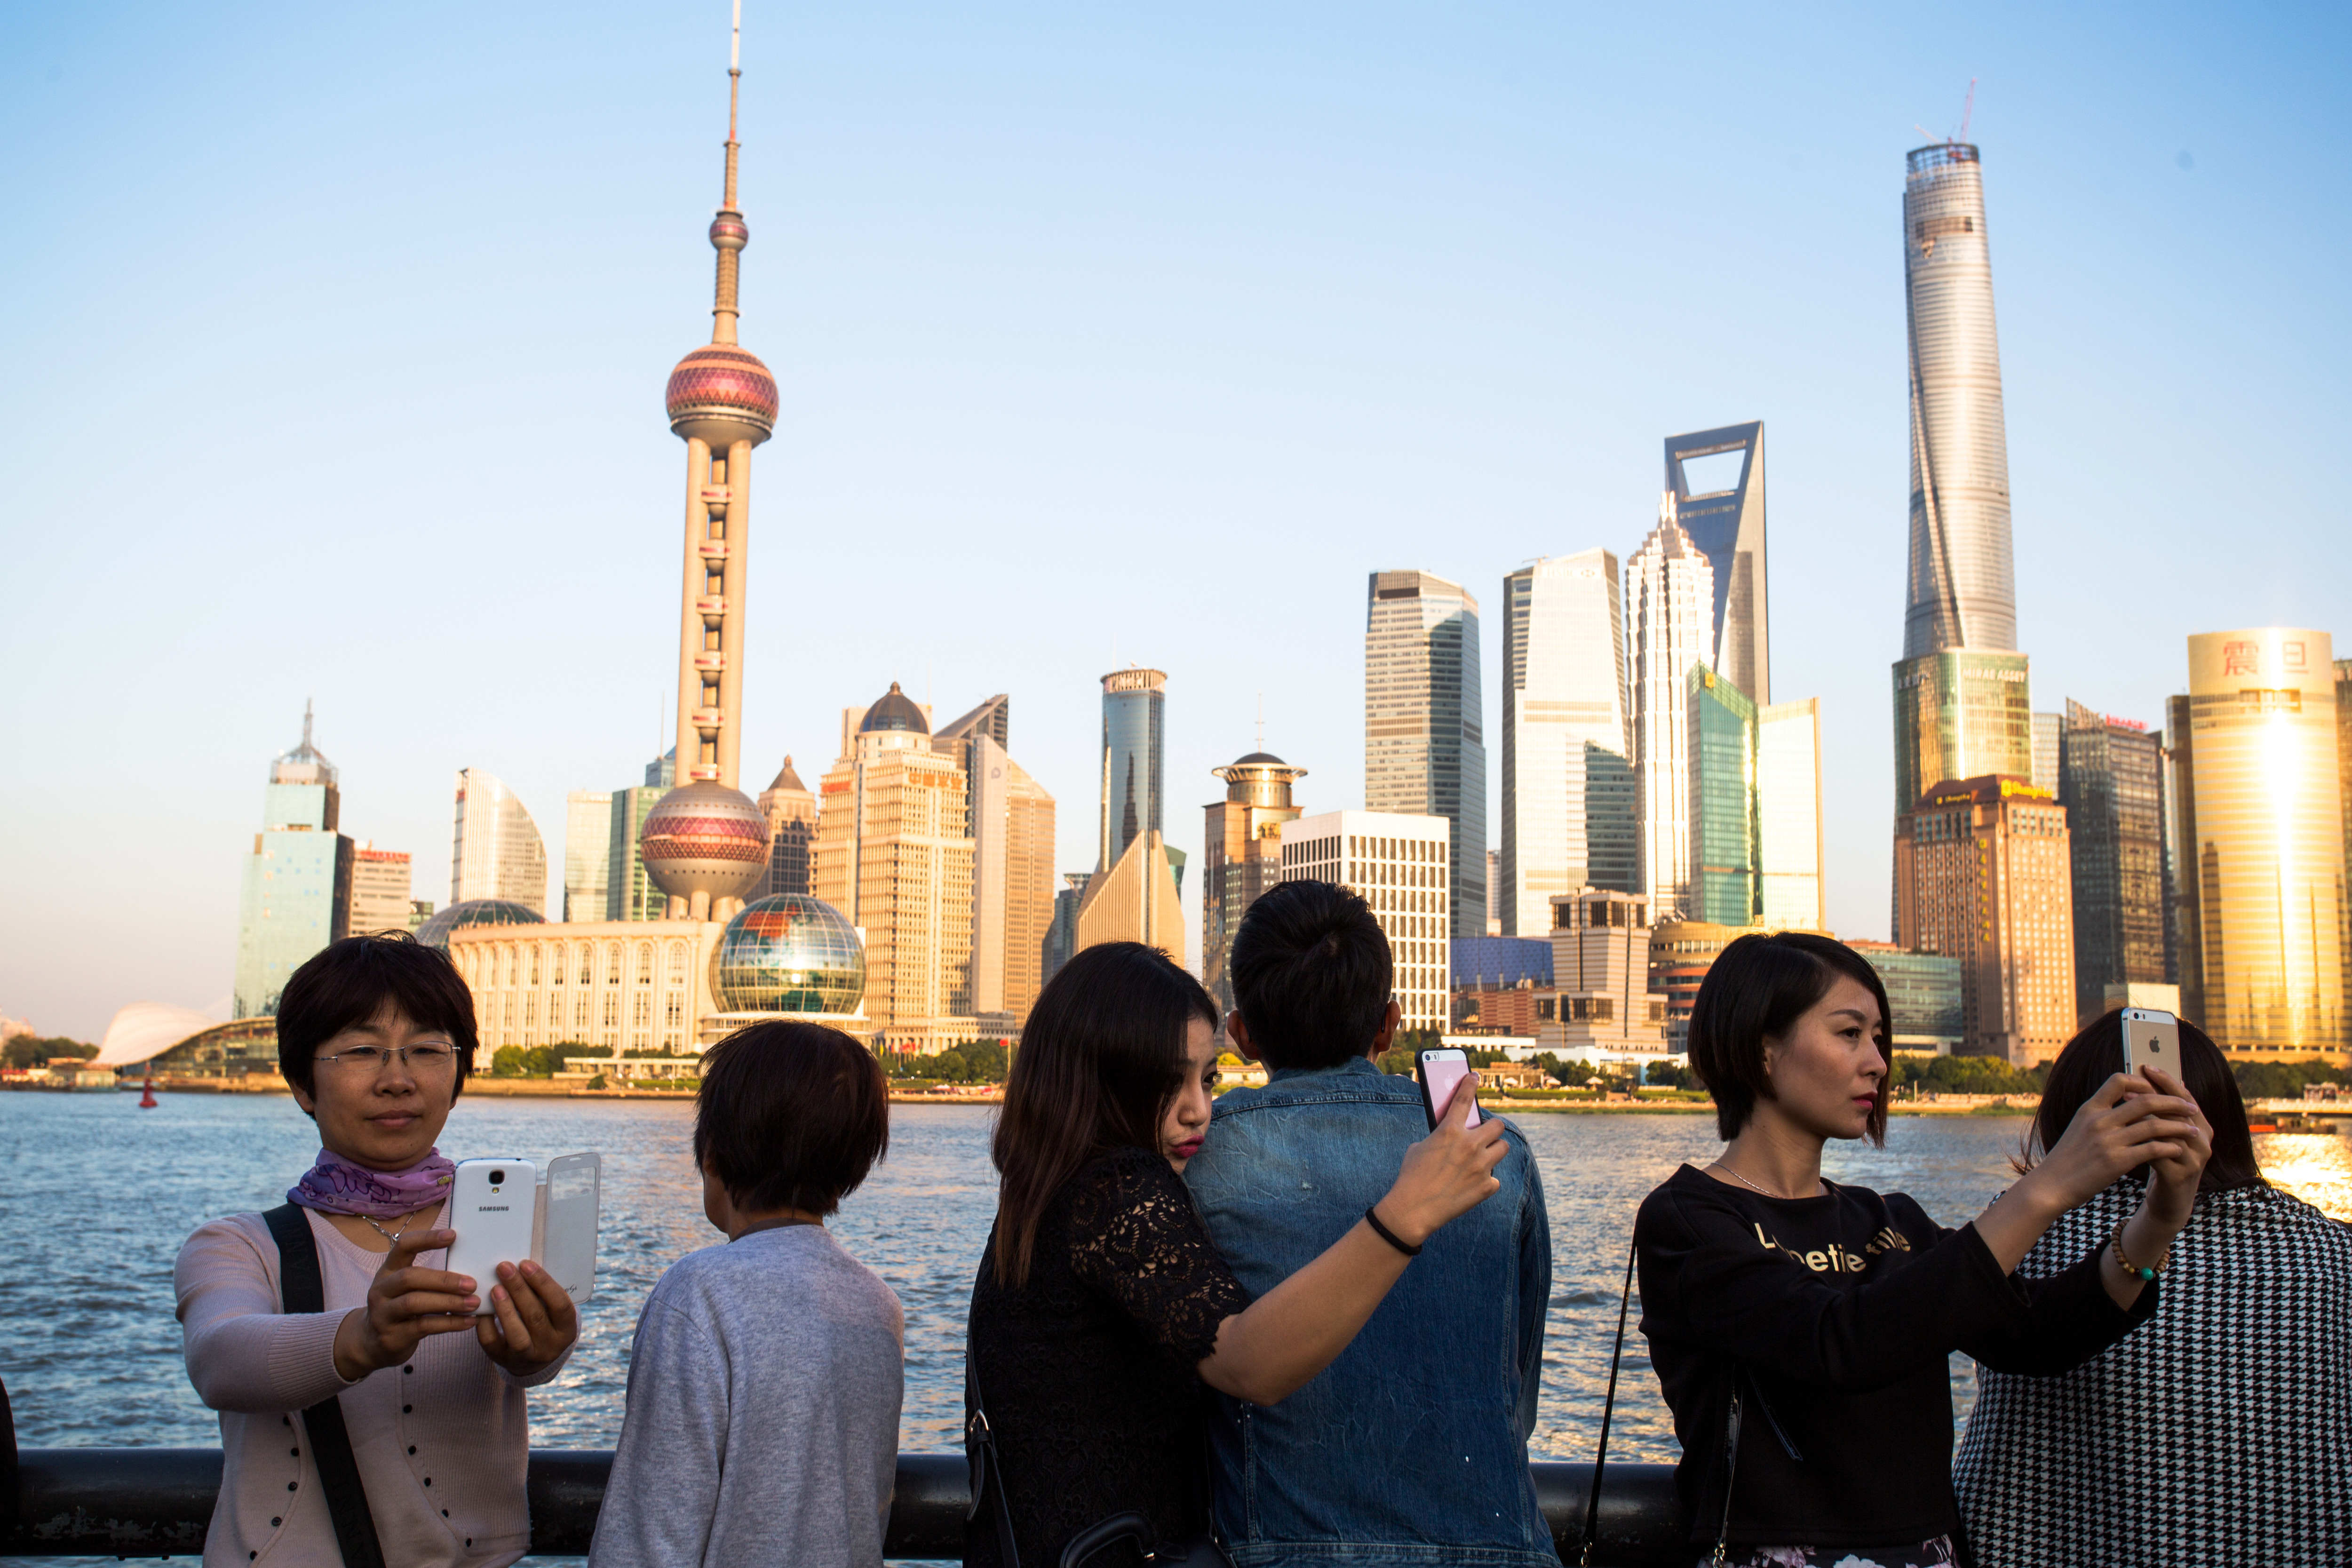 Tourists are taking selfies with the Oriental Pearl tower on